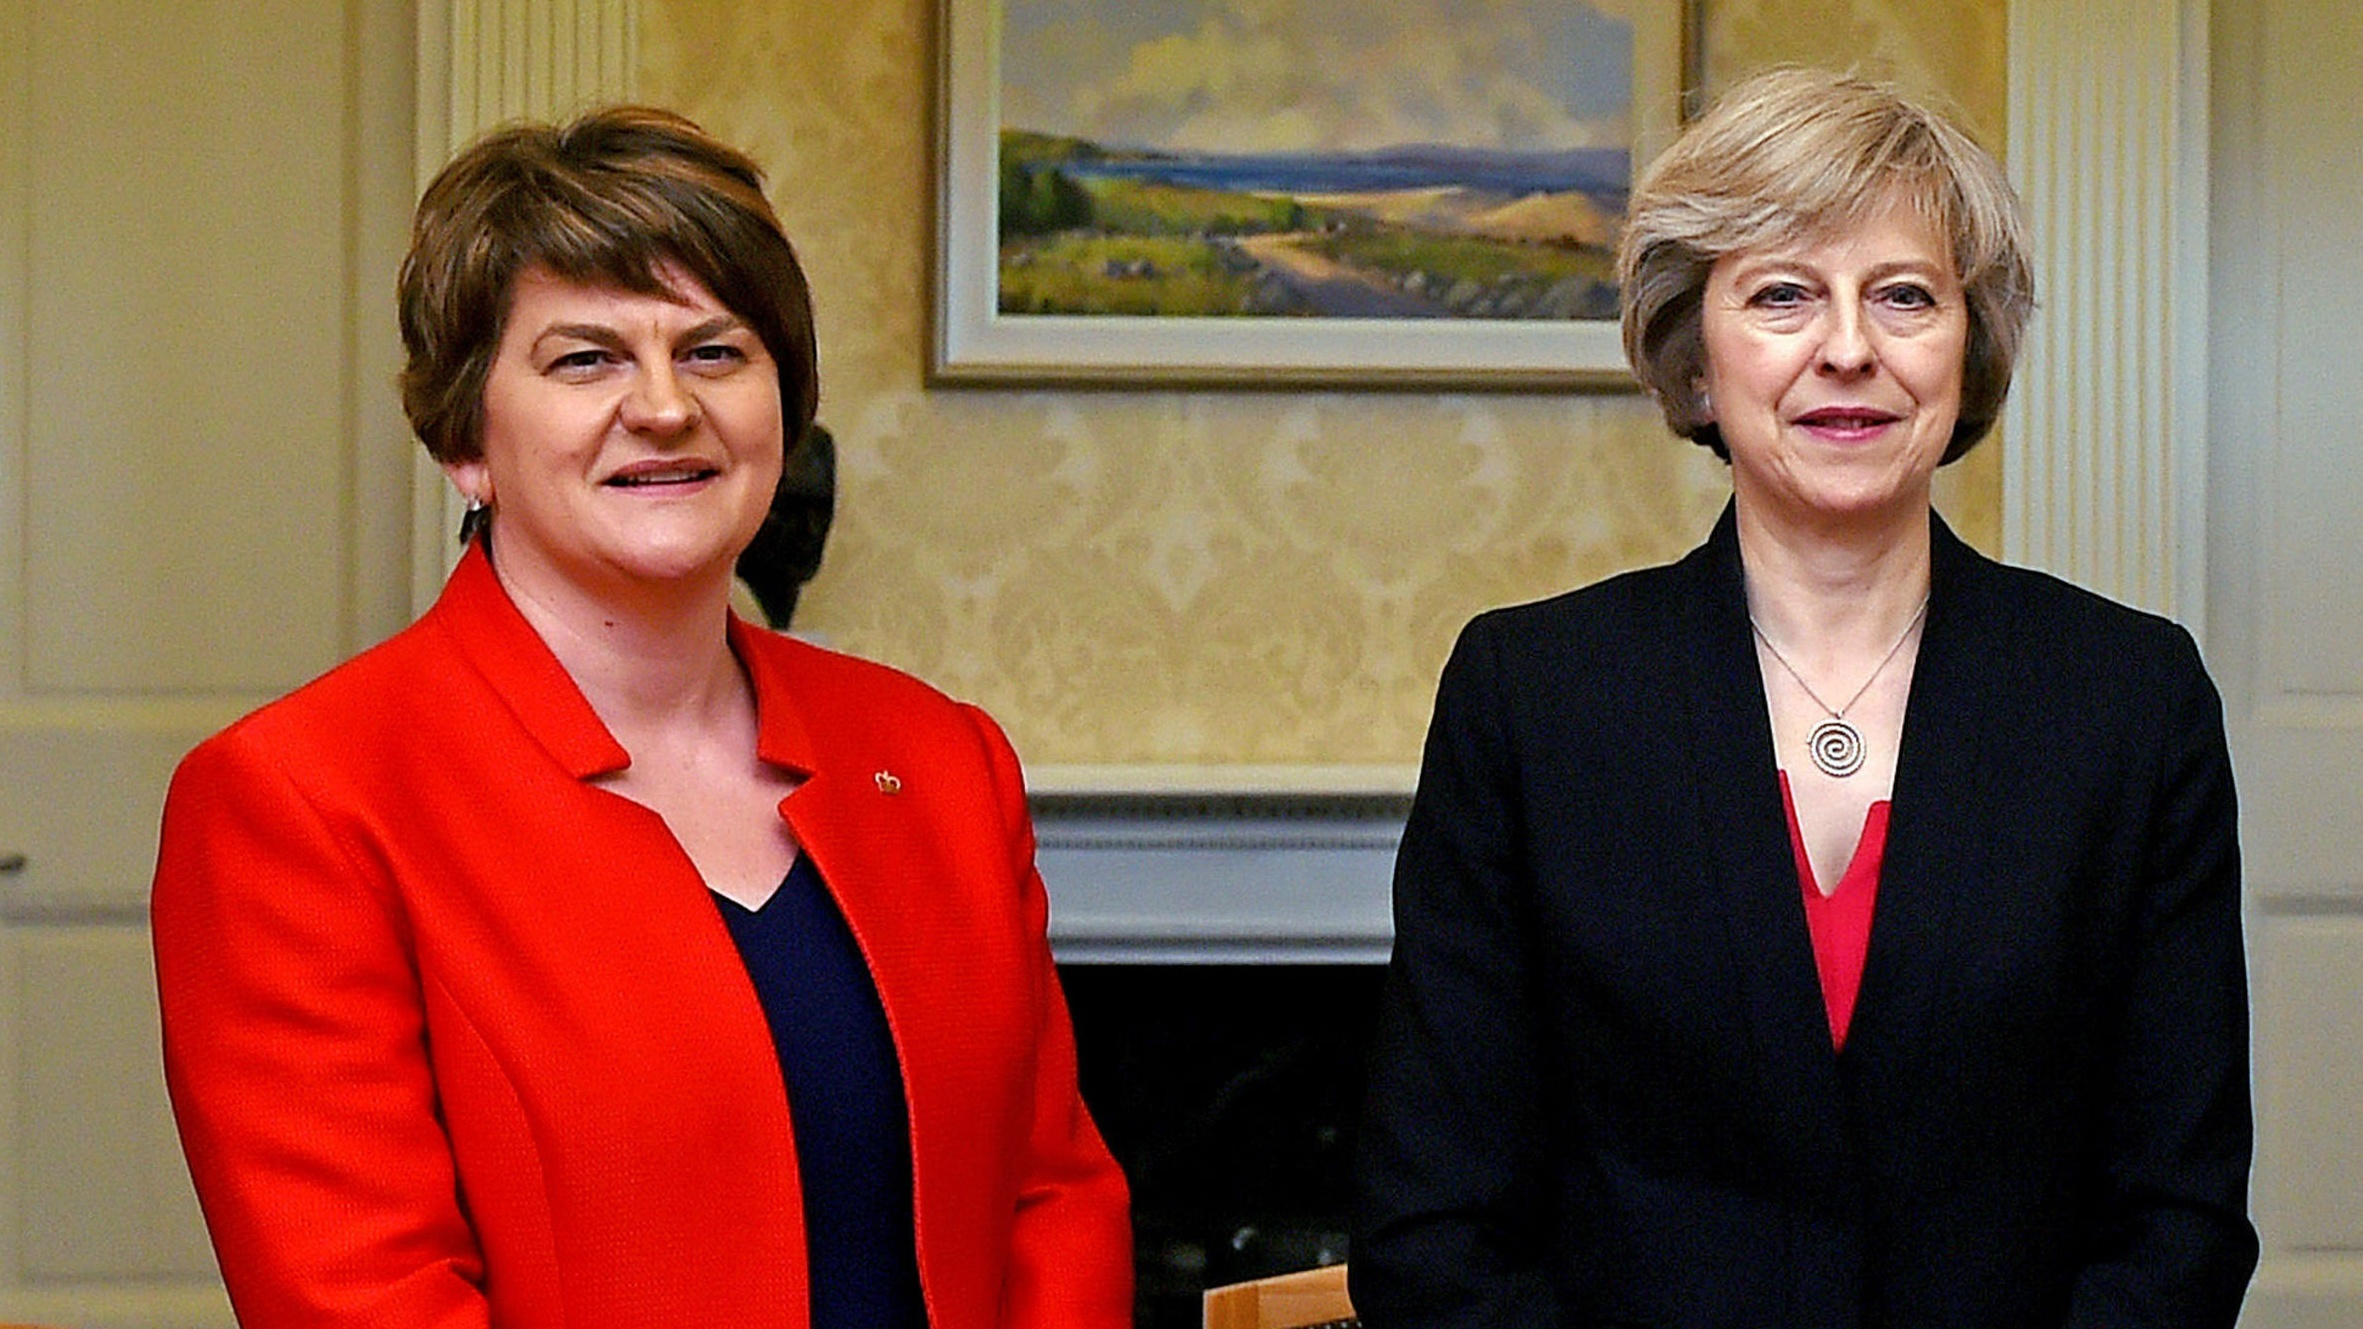 May to meet Northern Ireland parties amid DUP deal concerns